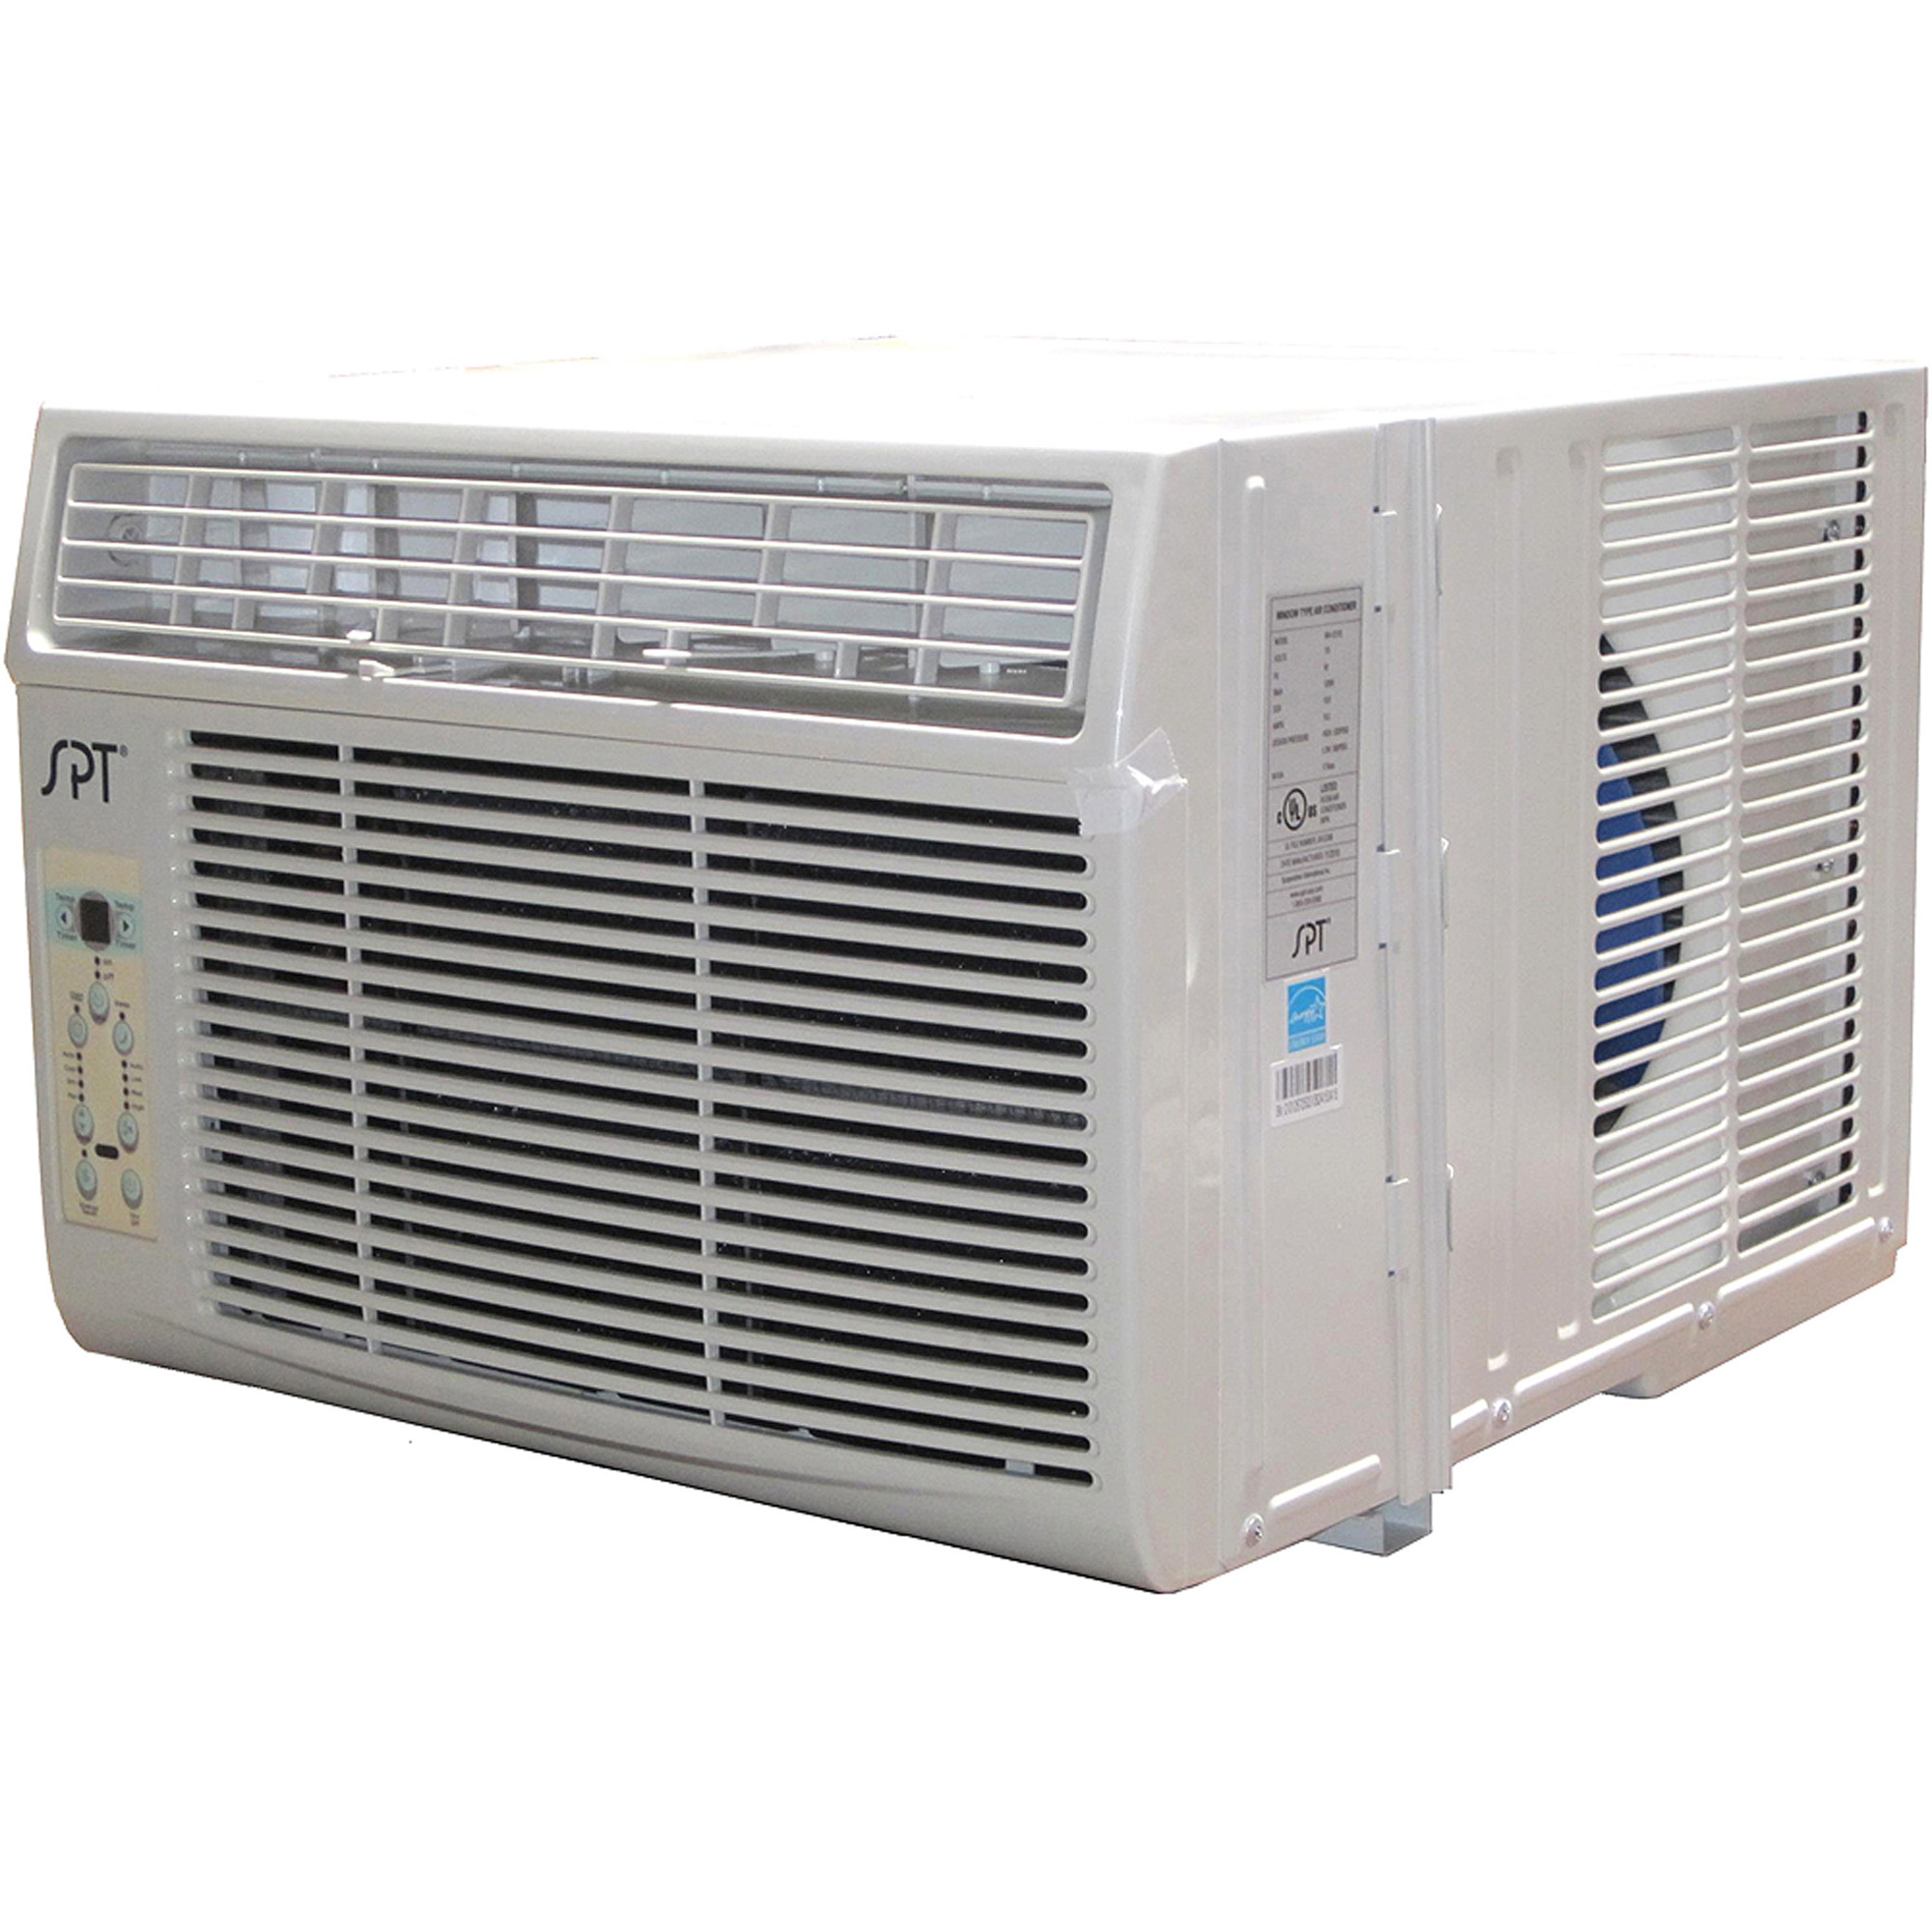 Sunpentown Energy Star 12000 BTU Window Air Conditioner with Remote Control, White